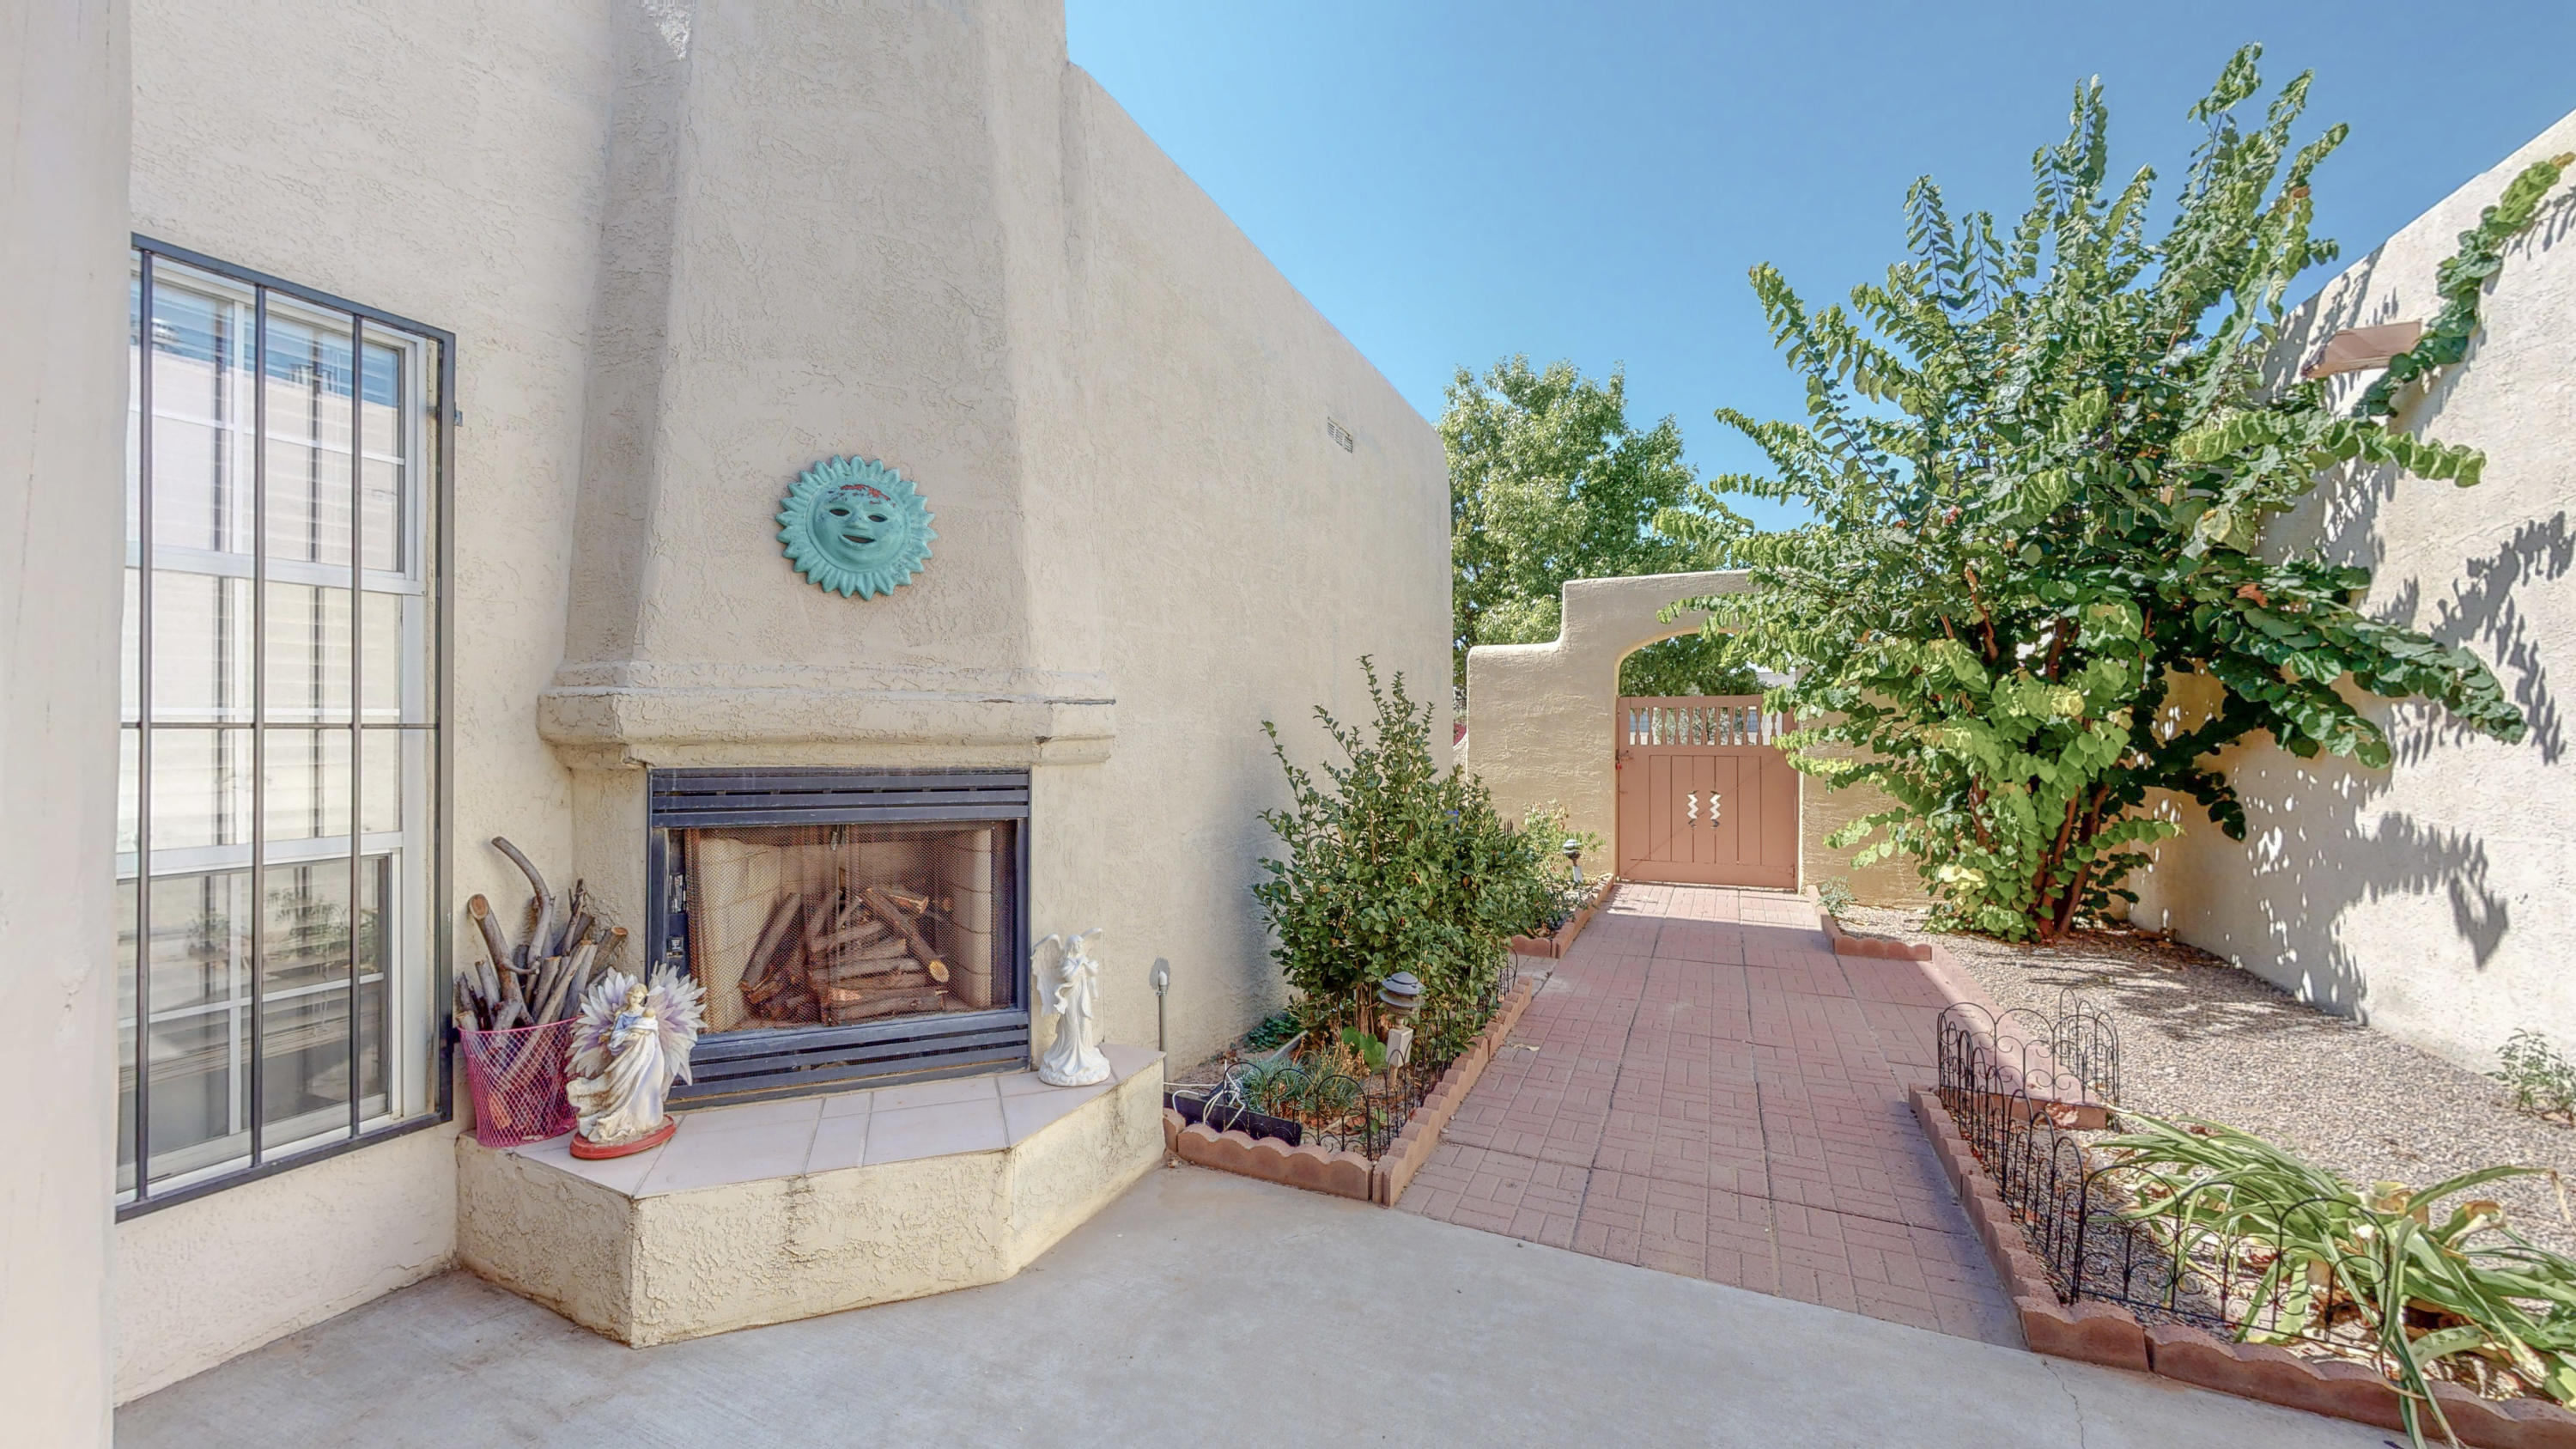 Golf Course corner lot home! Move in ready. Home has extra office space of storage in garage. Sunken living room with gas fire place. Ceramic title throughout home. Private courtyard with kiva fireplace. Backyard patio with spacious yard.